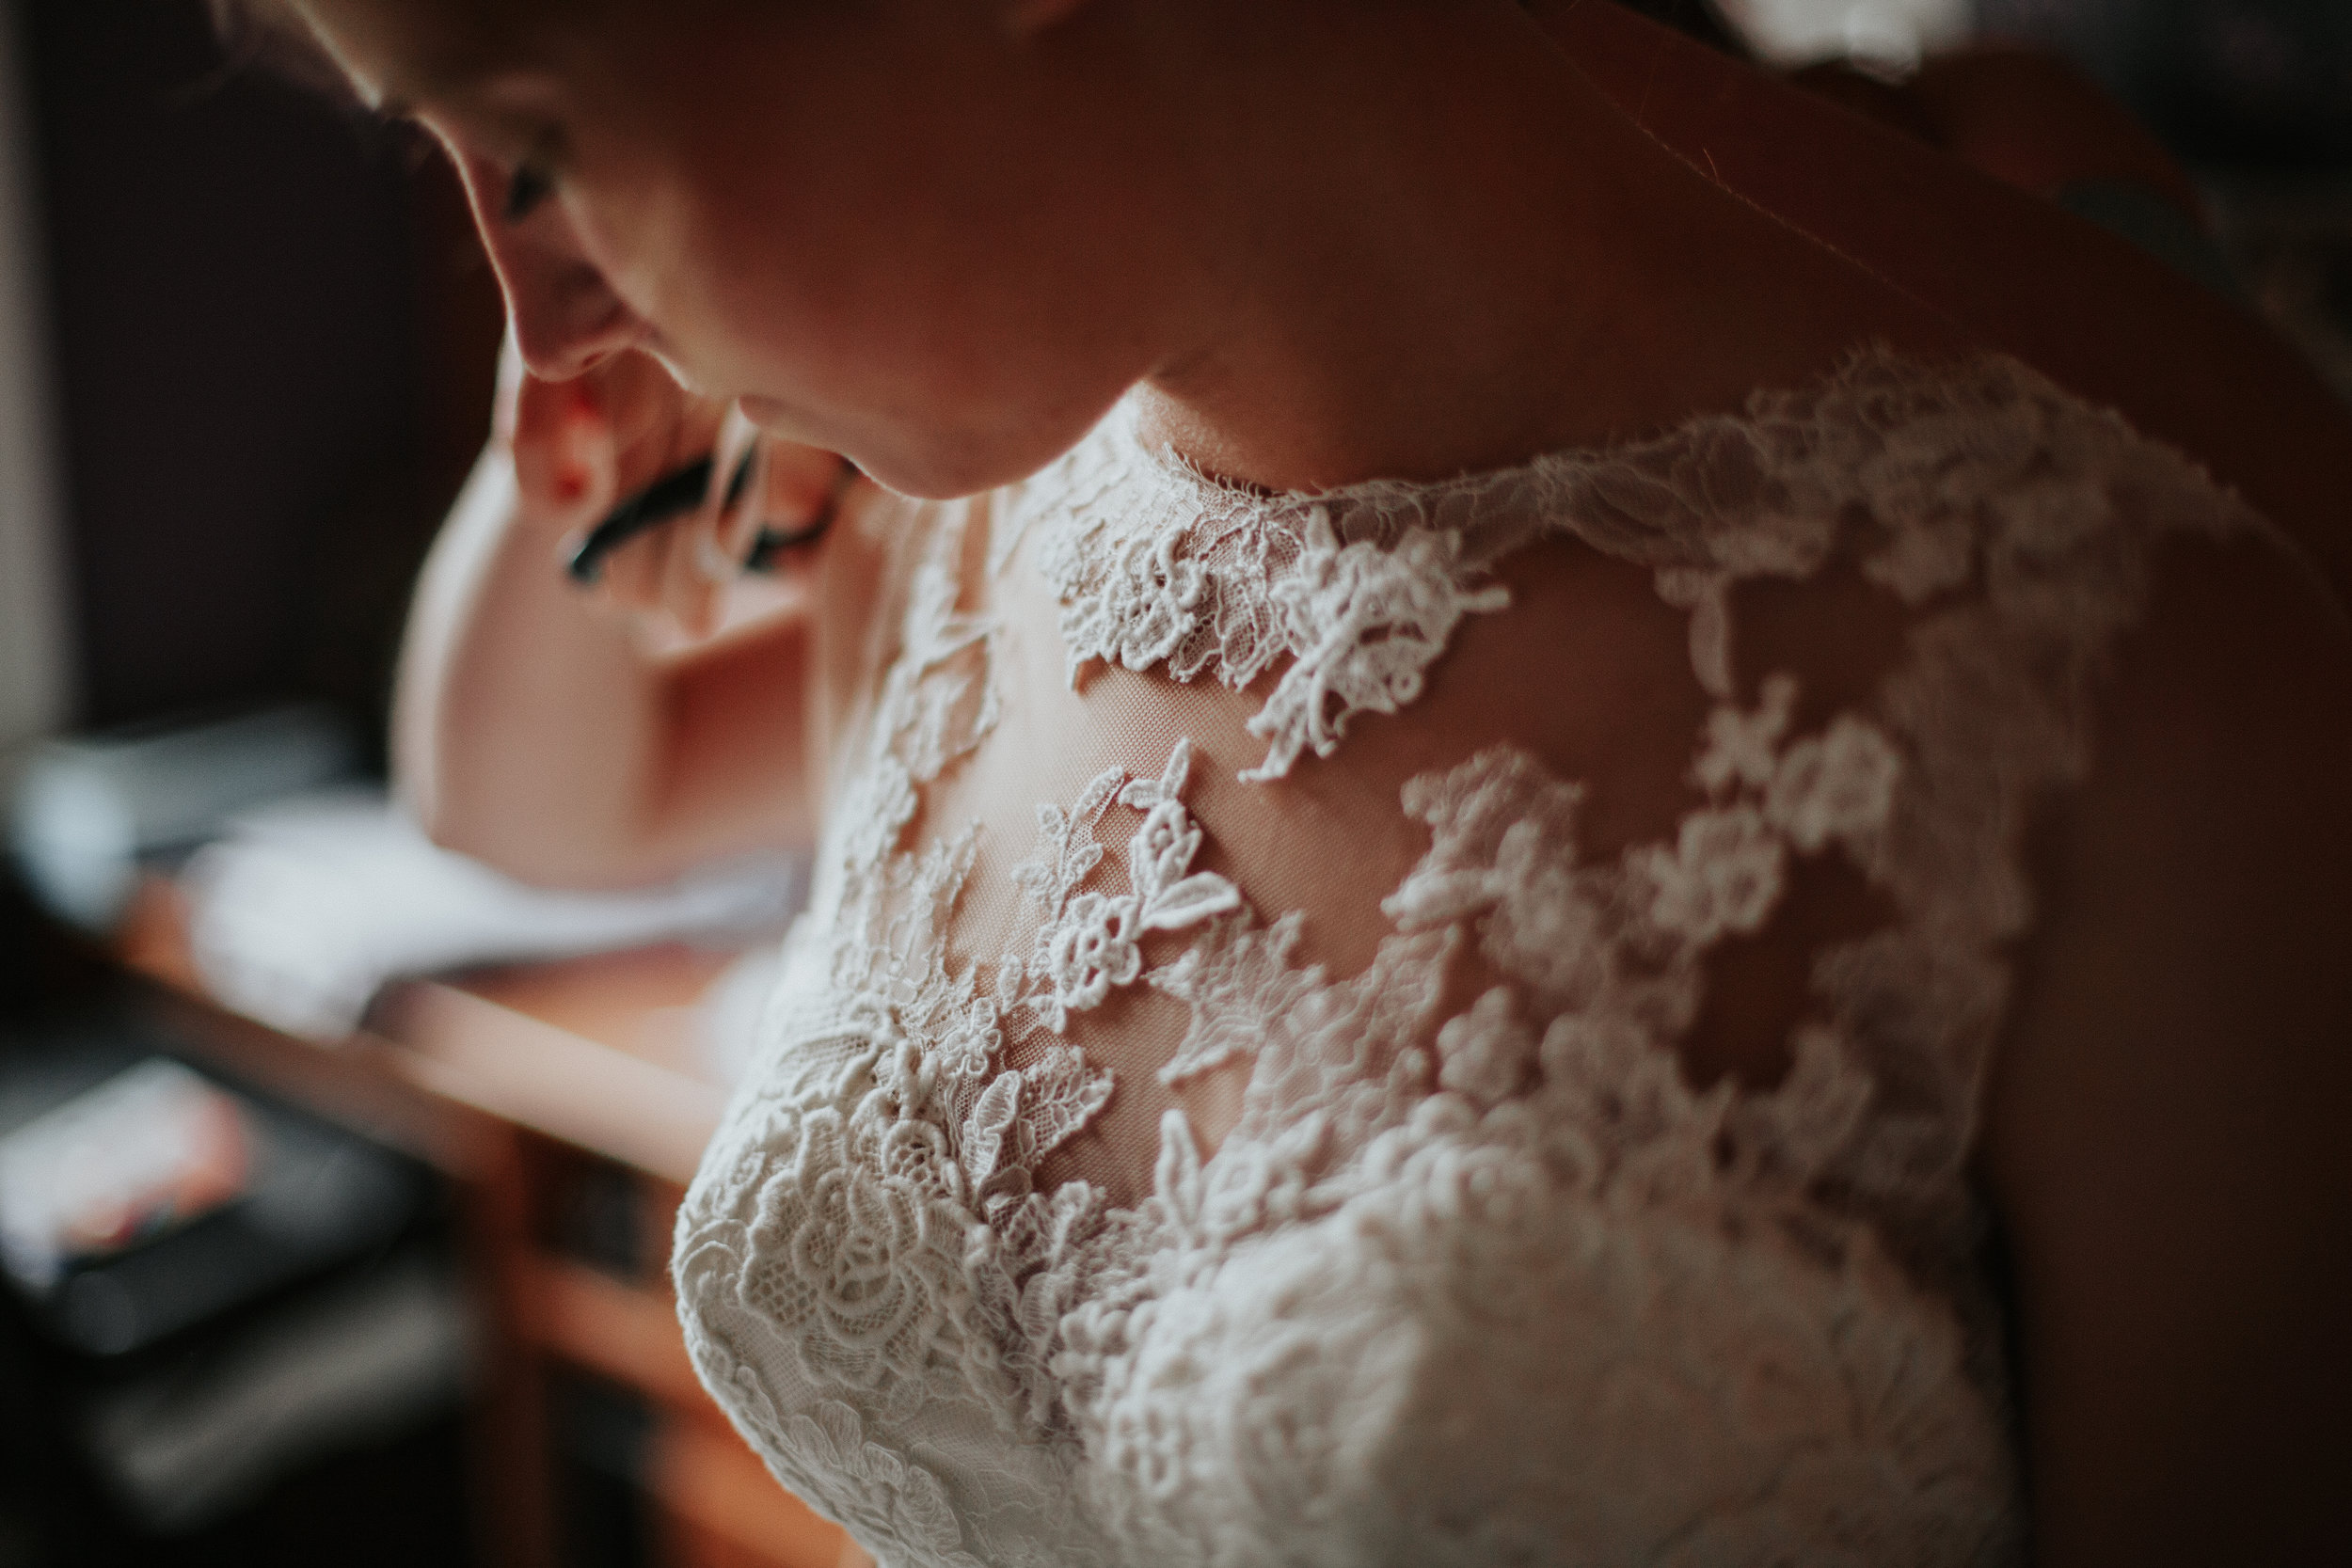 Close up of bride's dress and lace details for wedding in Ghent, Belgium